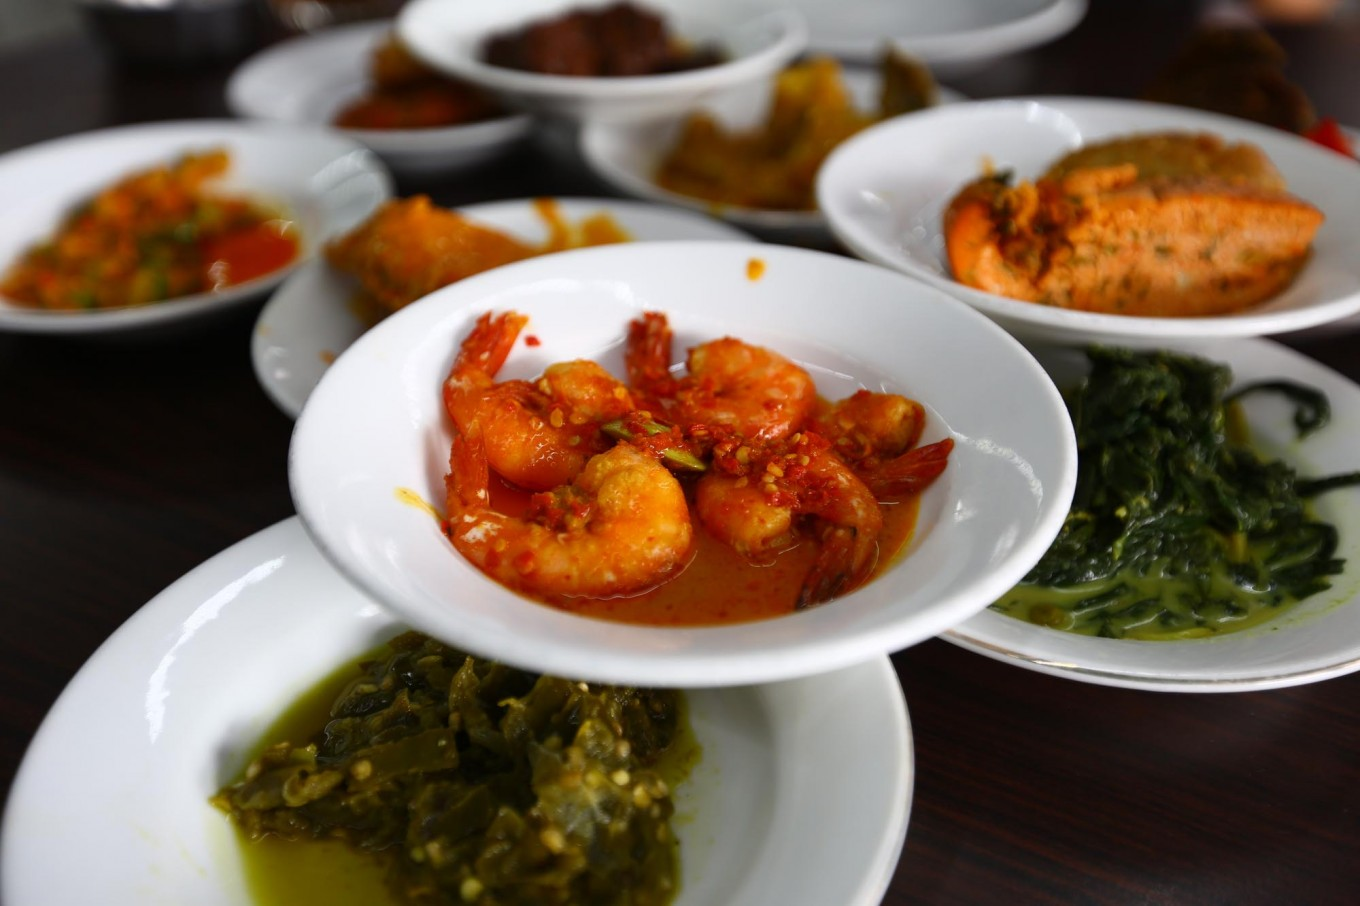 Asia Pacific travelers keen to try local cuisine, survey says